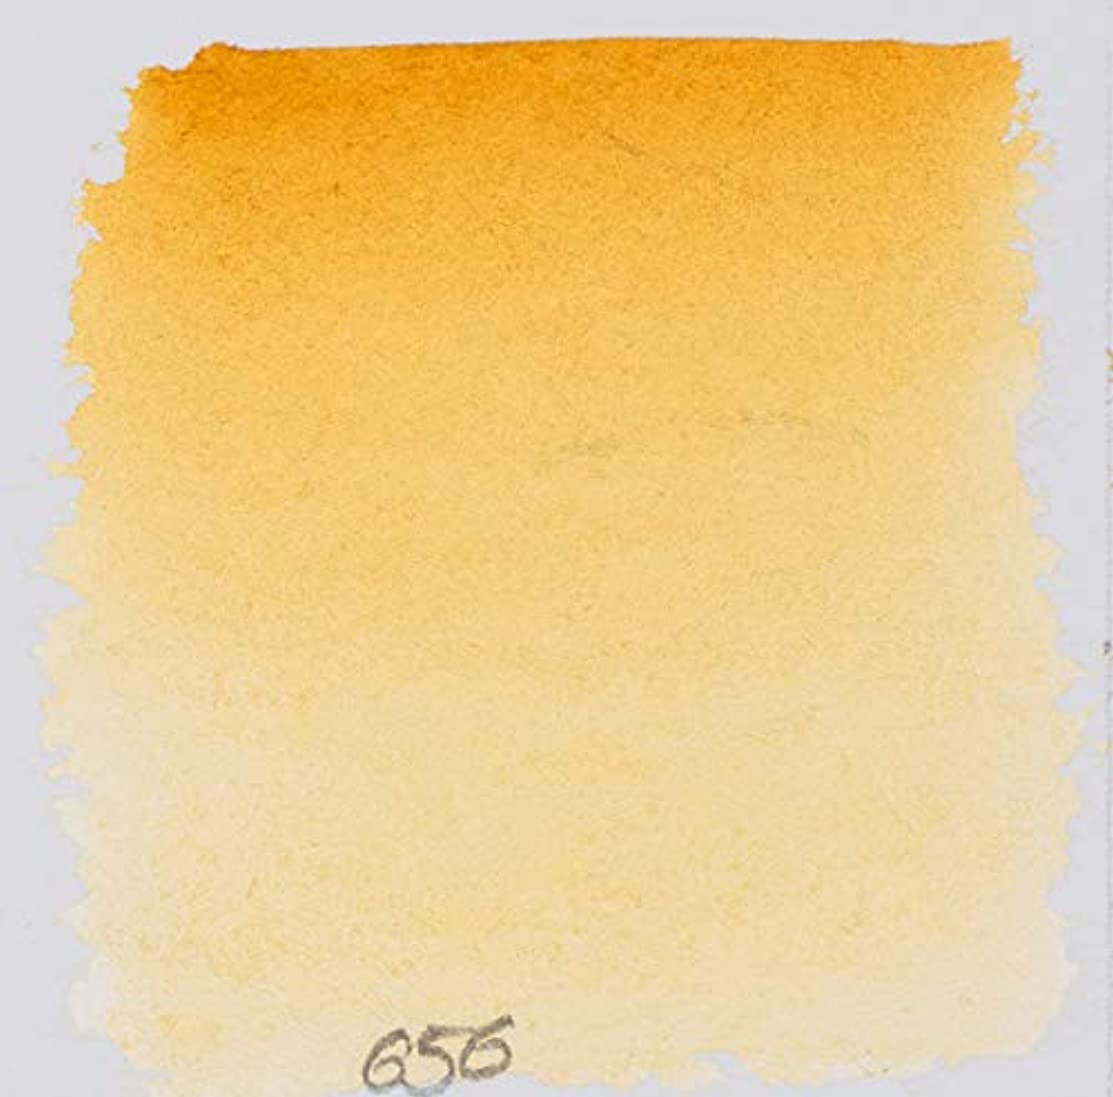 Schmincke Horadam Aquarell Watercolor - 15 ml Tube - Yellow Raw Ochre